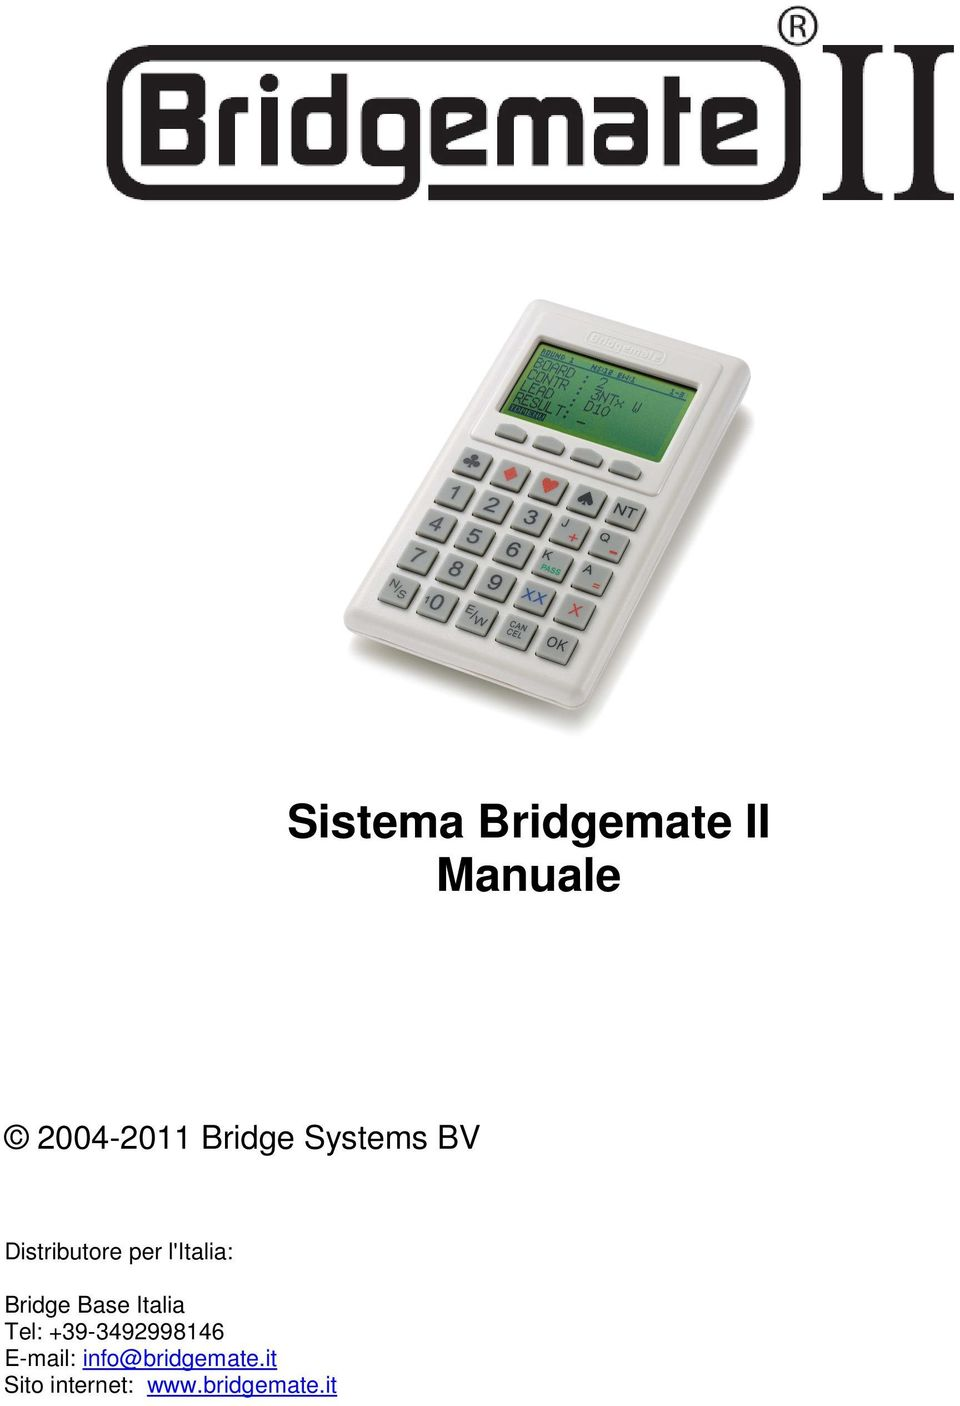 Bridge Base Italia Tel: +39-3492998146